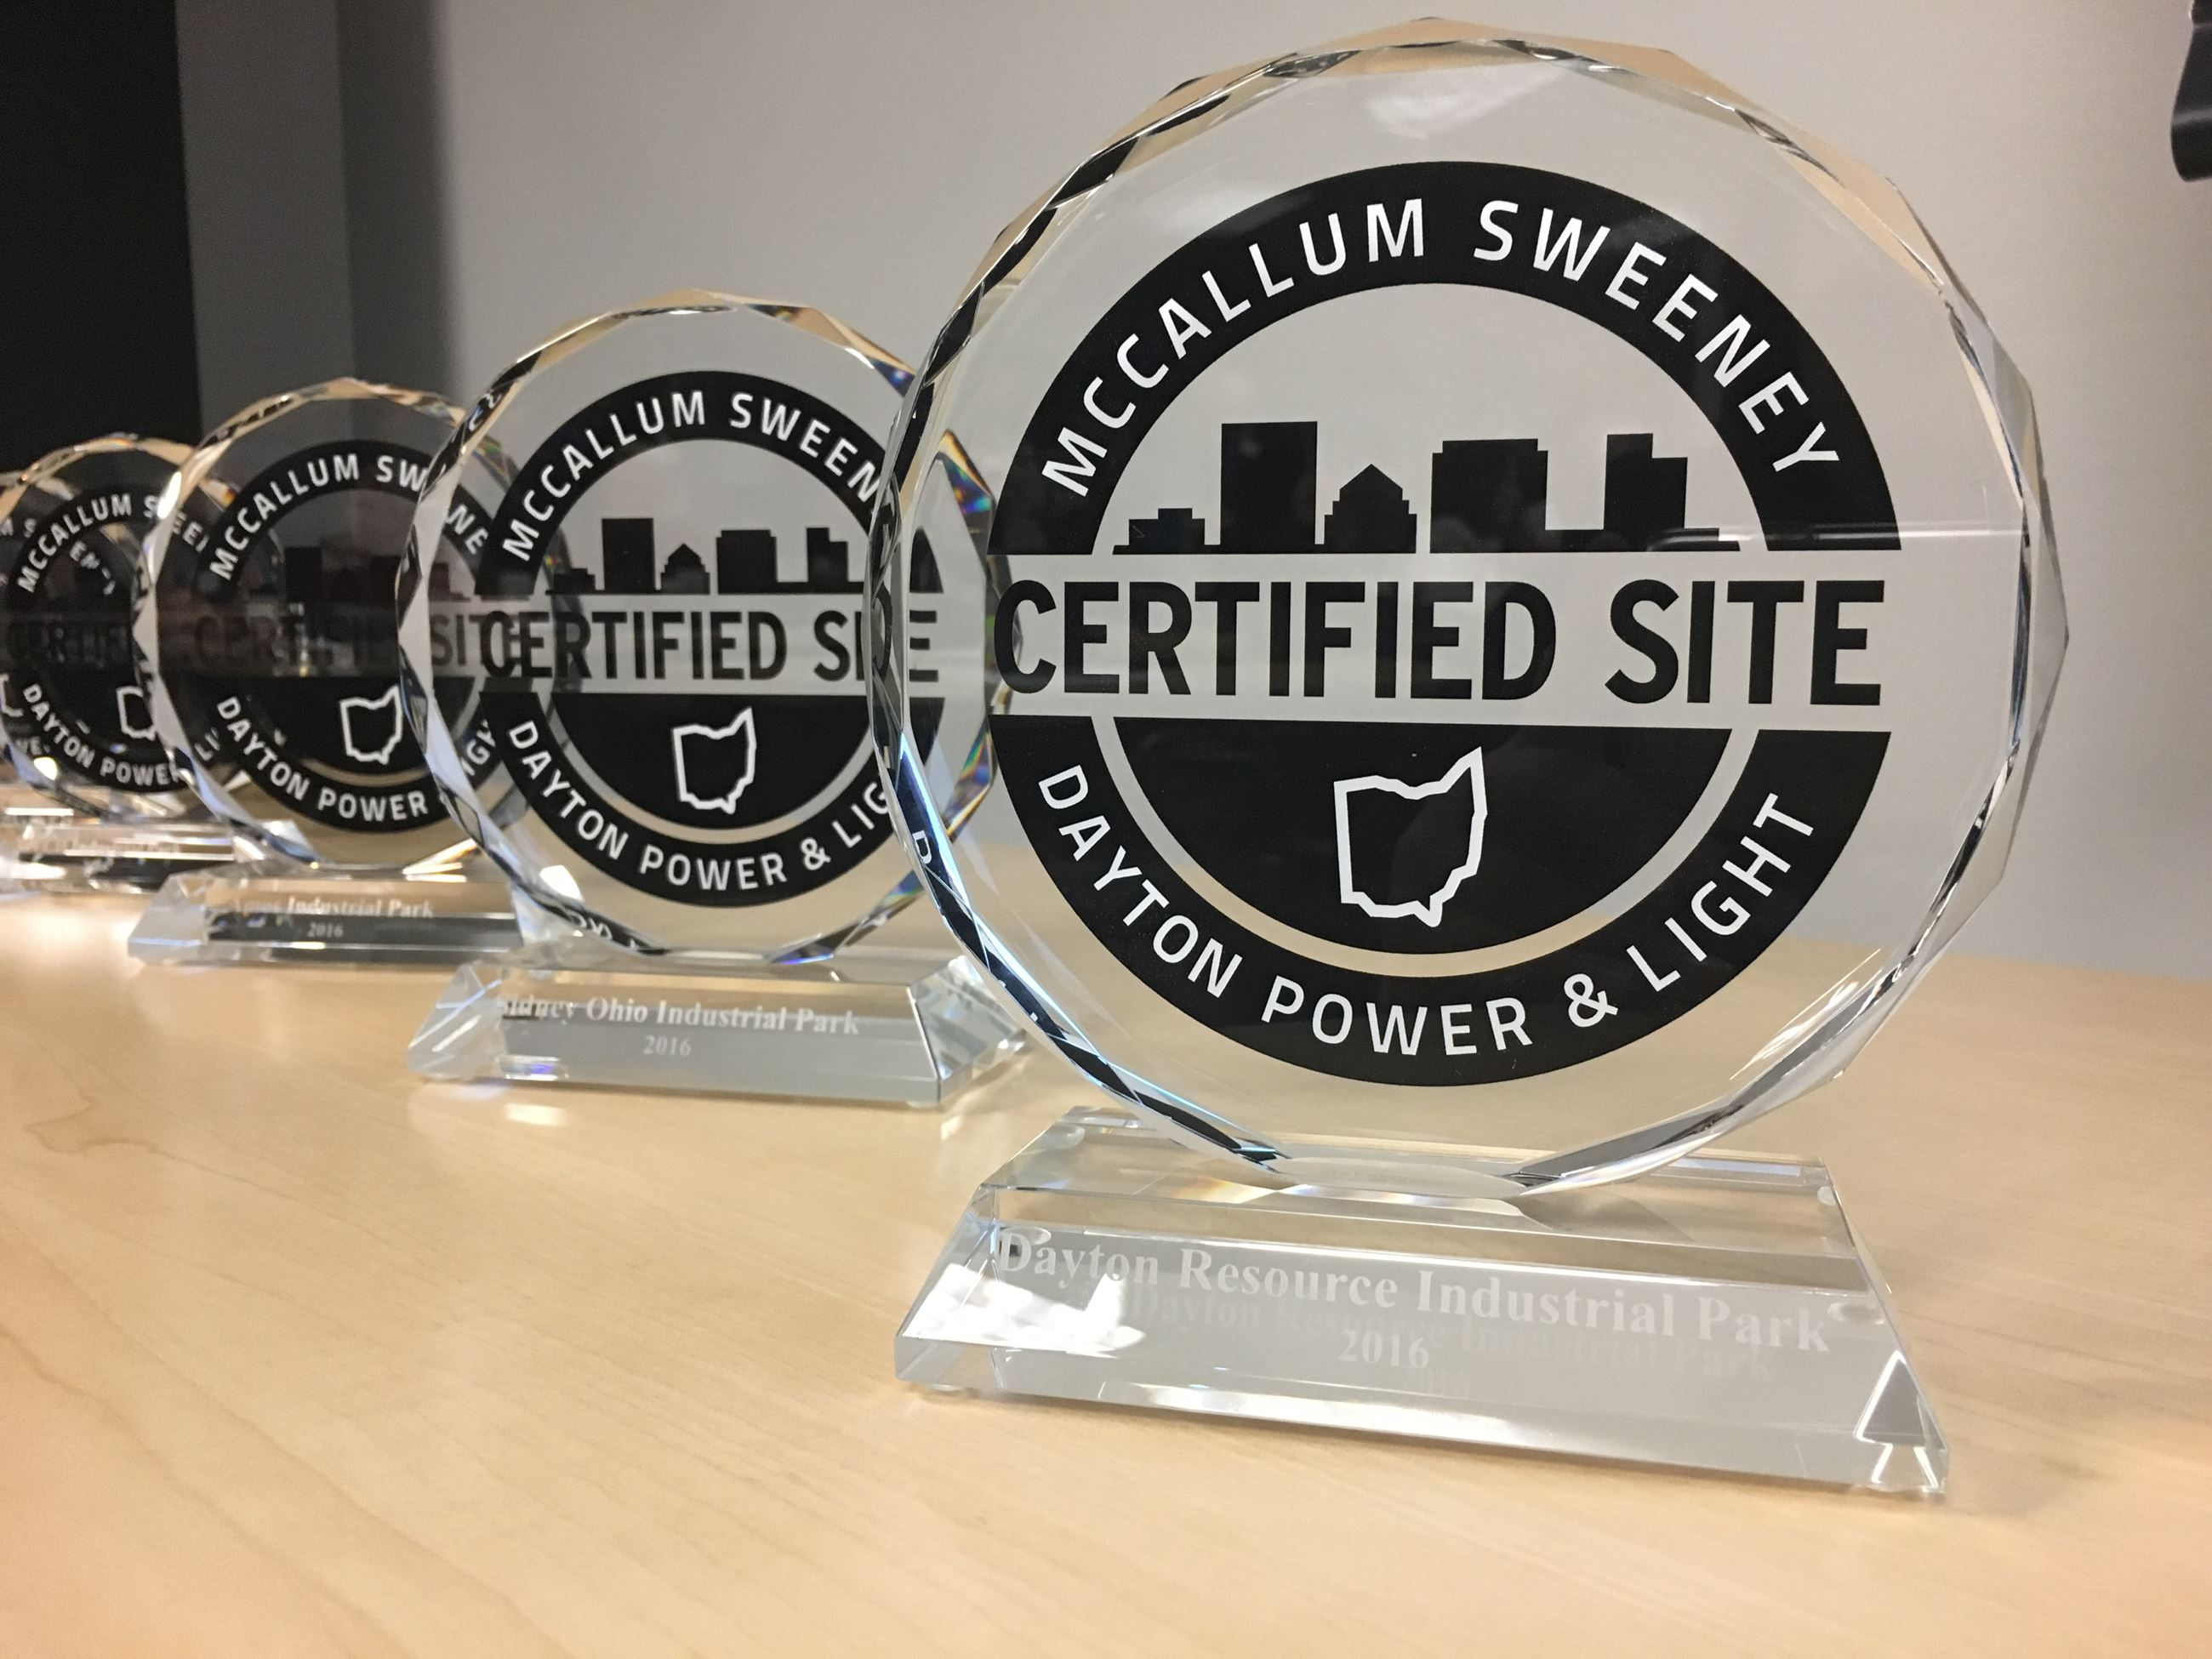 Certified Site Award